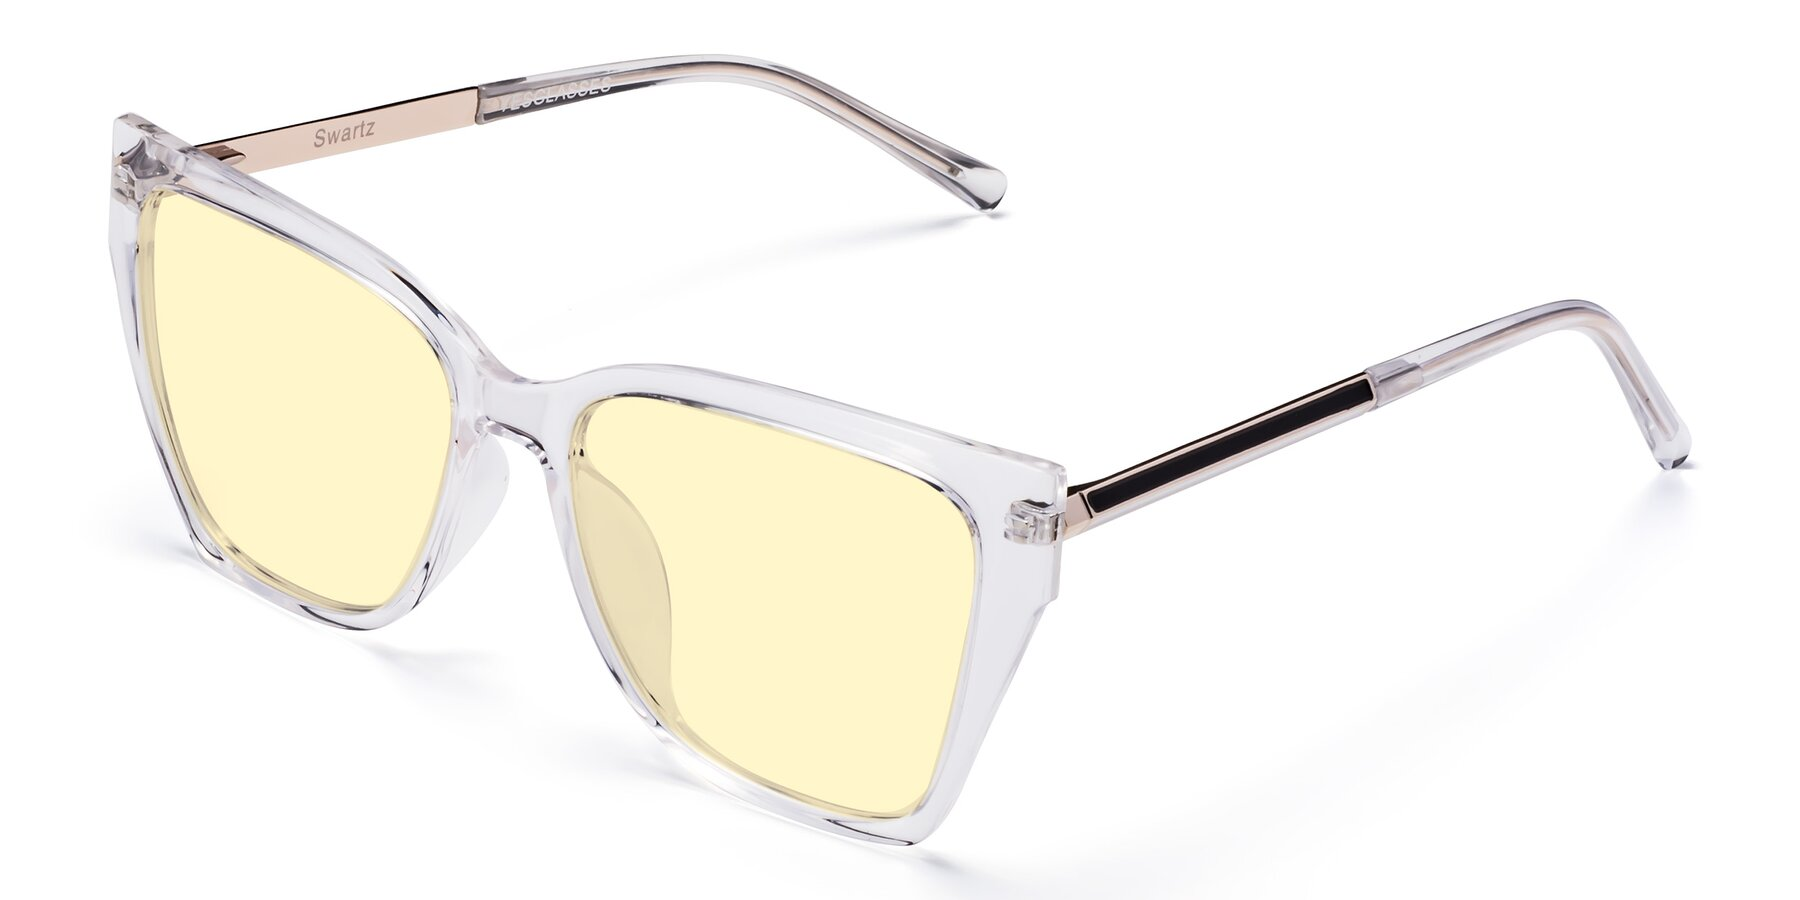 Angle of Swartz in Clear with Light Yellow Tinted Lenses